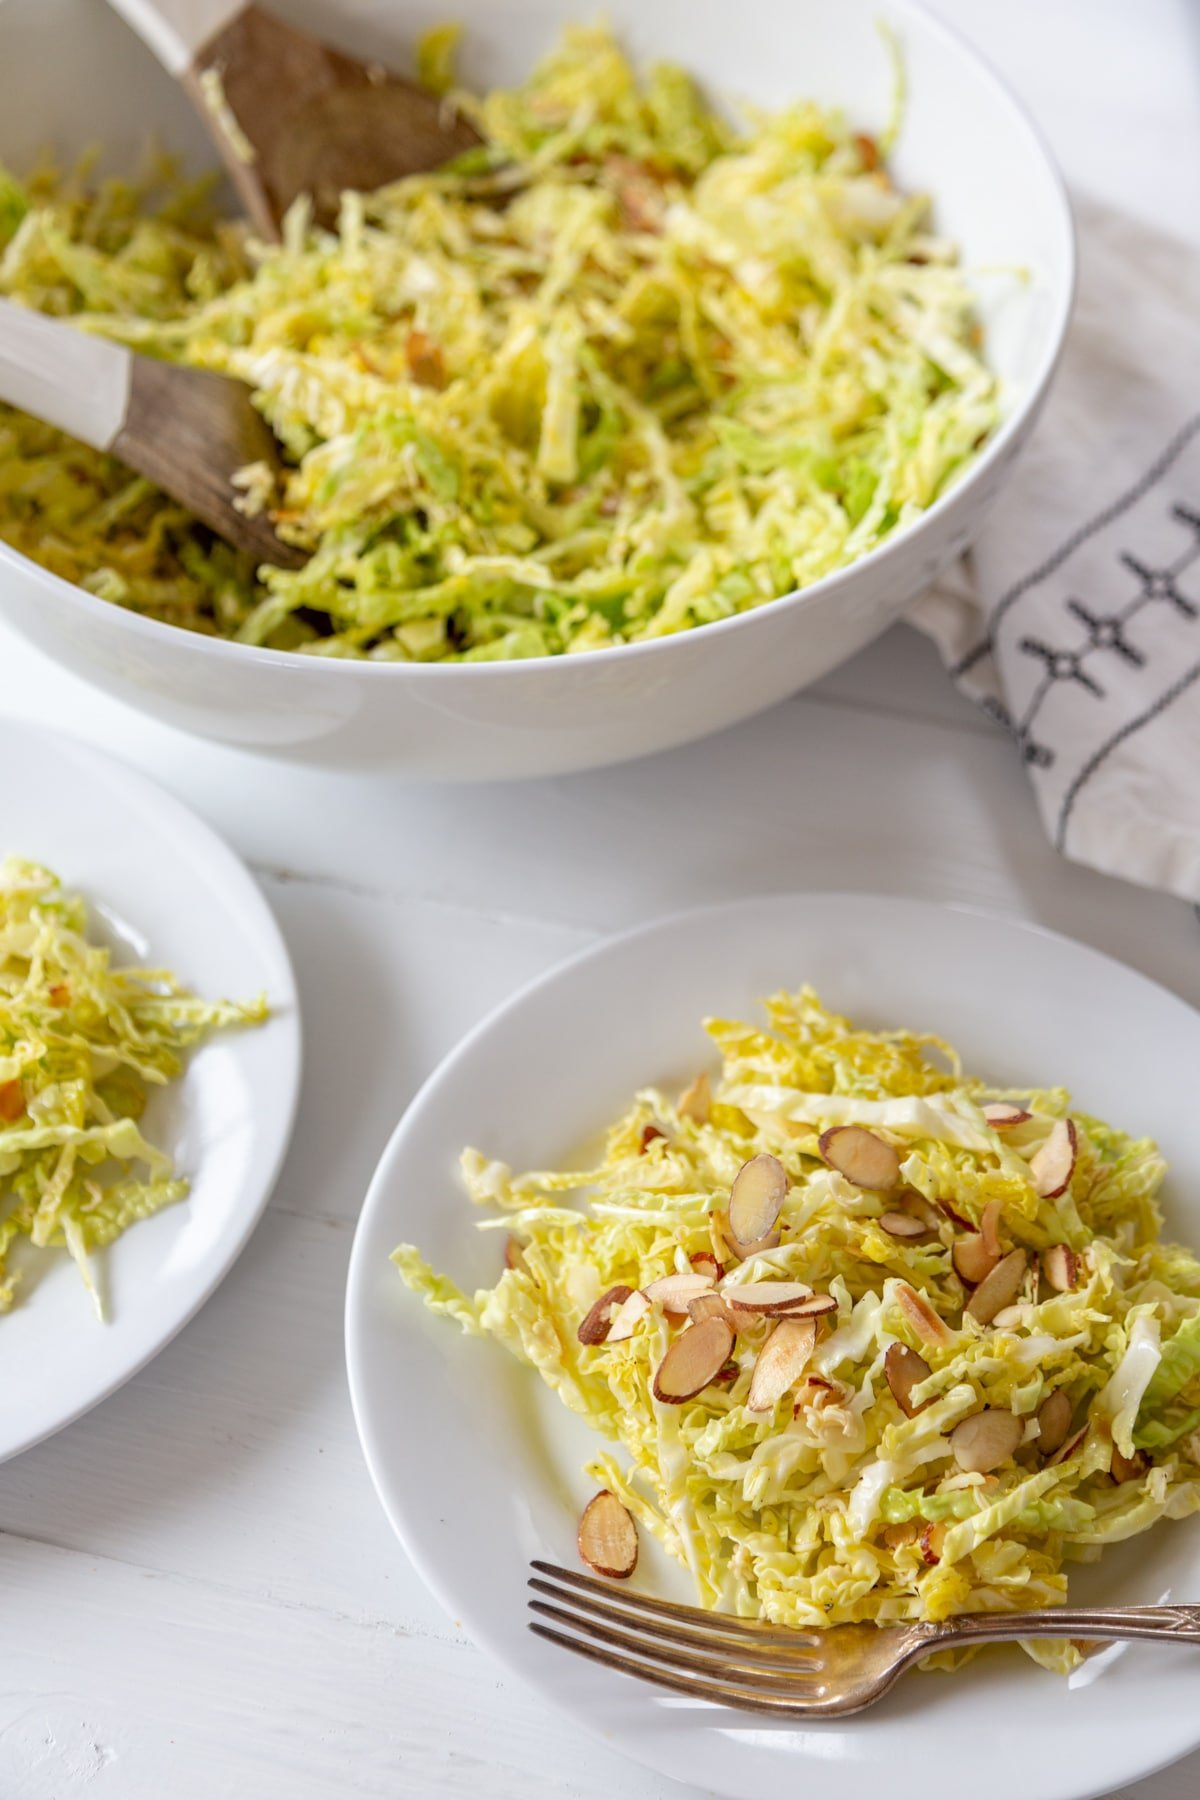 A white plate with shredded cabbage and almond salad with a silver fork on the edge of the plate, part of a white plate with salad on the left, and a white bowl of the salad with white and wood salad serving pieces in the bowl.